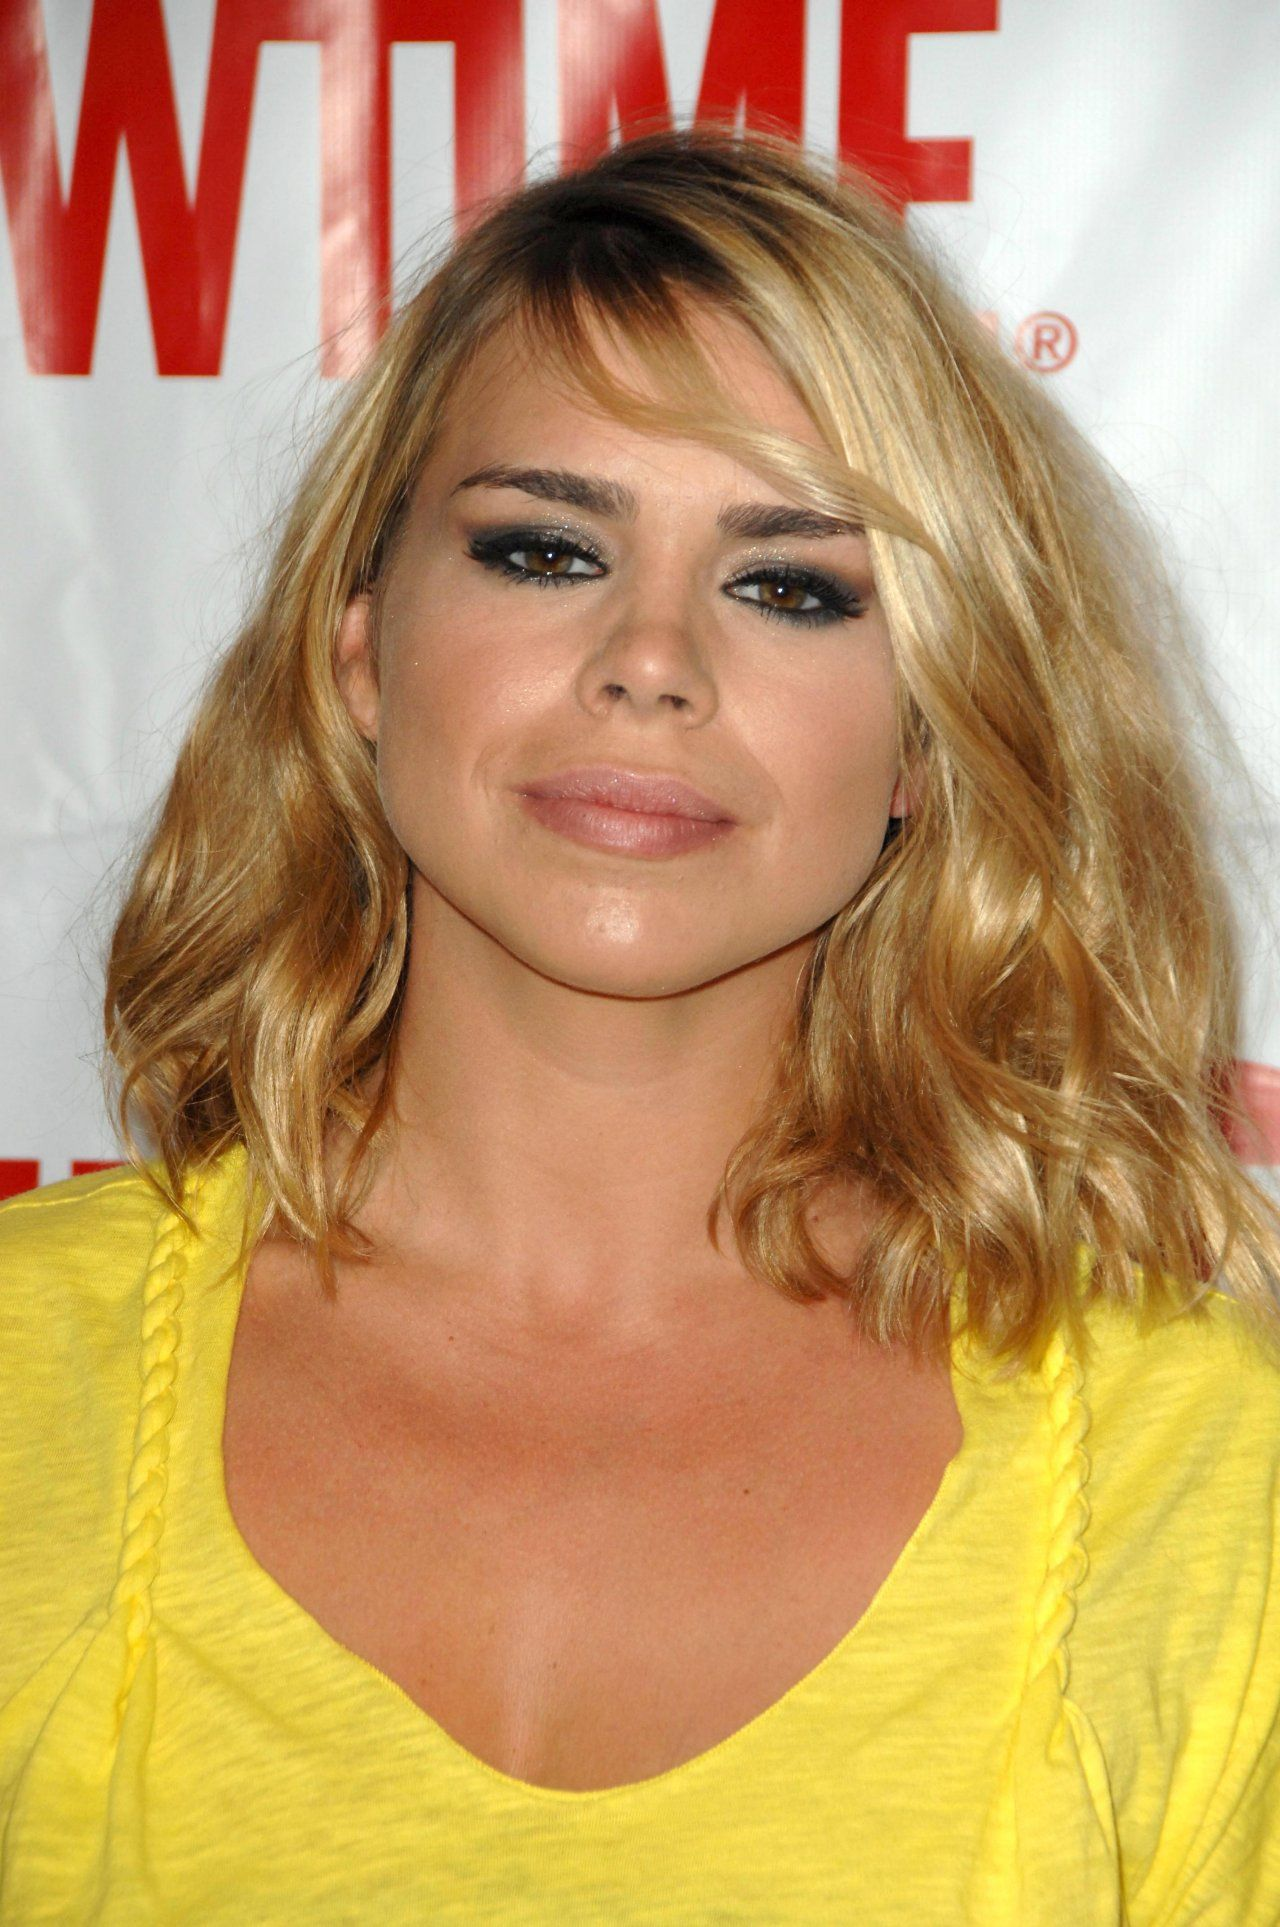 Celebrity Billie Piper nude (87 foto and video), Topless, Fappening, Feet, cameltoe 2018